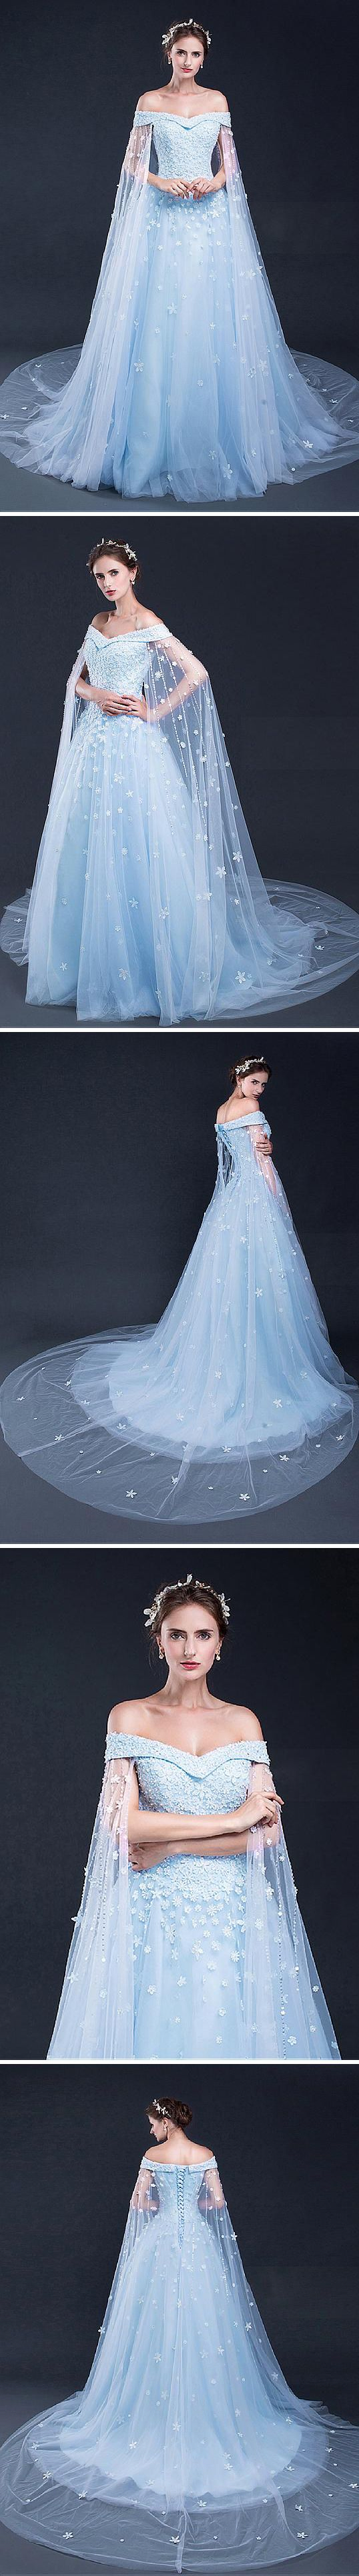 Frozen Wedding Theme Dress Fantastical Weddings Dresses fantasticalweddings.com Marvelous Tulle Off-the-shoulder Neckline A-line Prom Dresses With Beaded Lace Appliqués | dressilyme.com